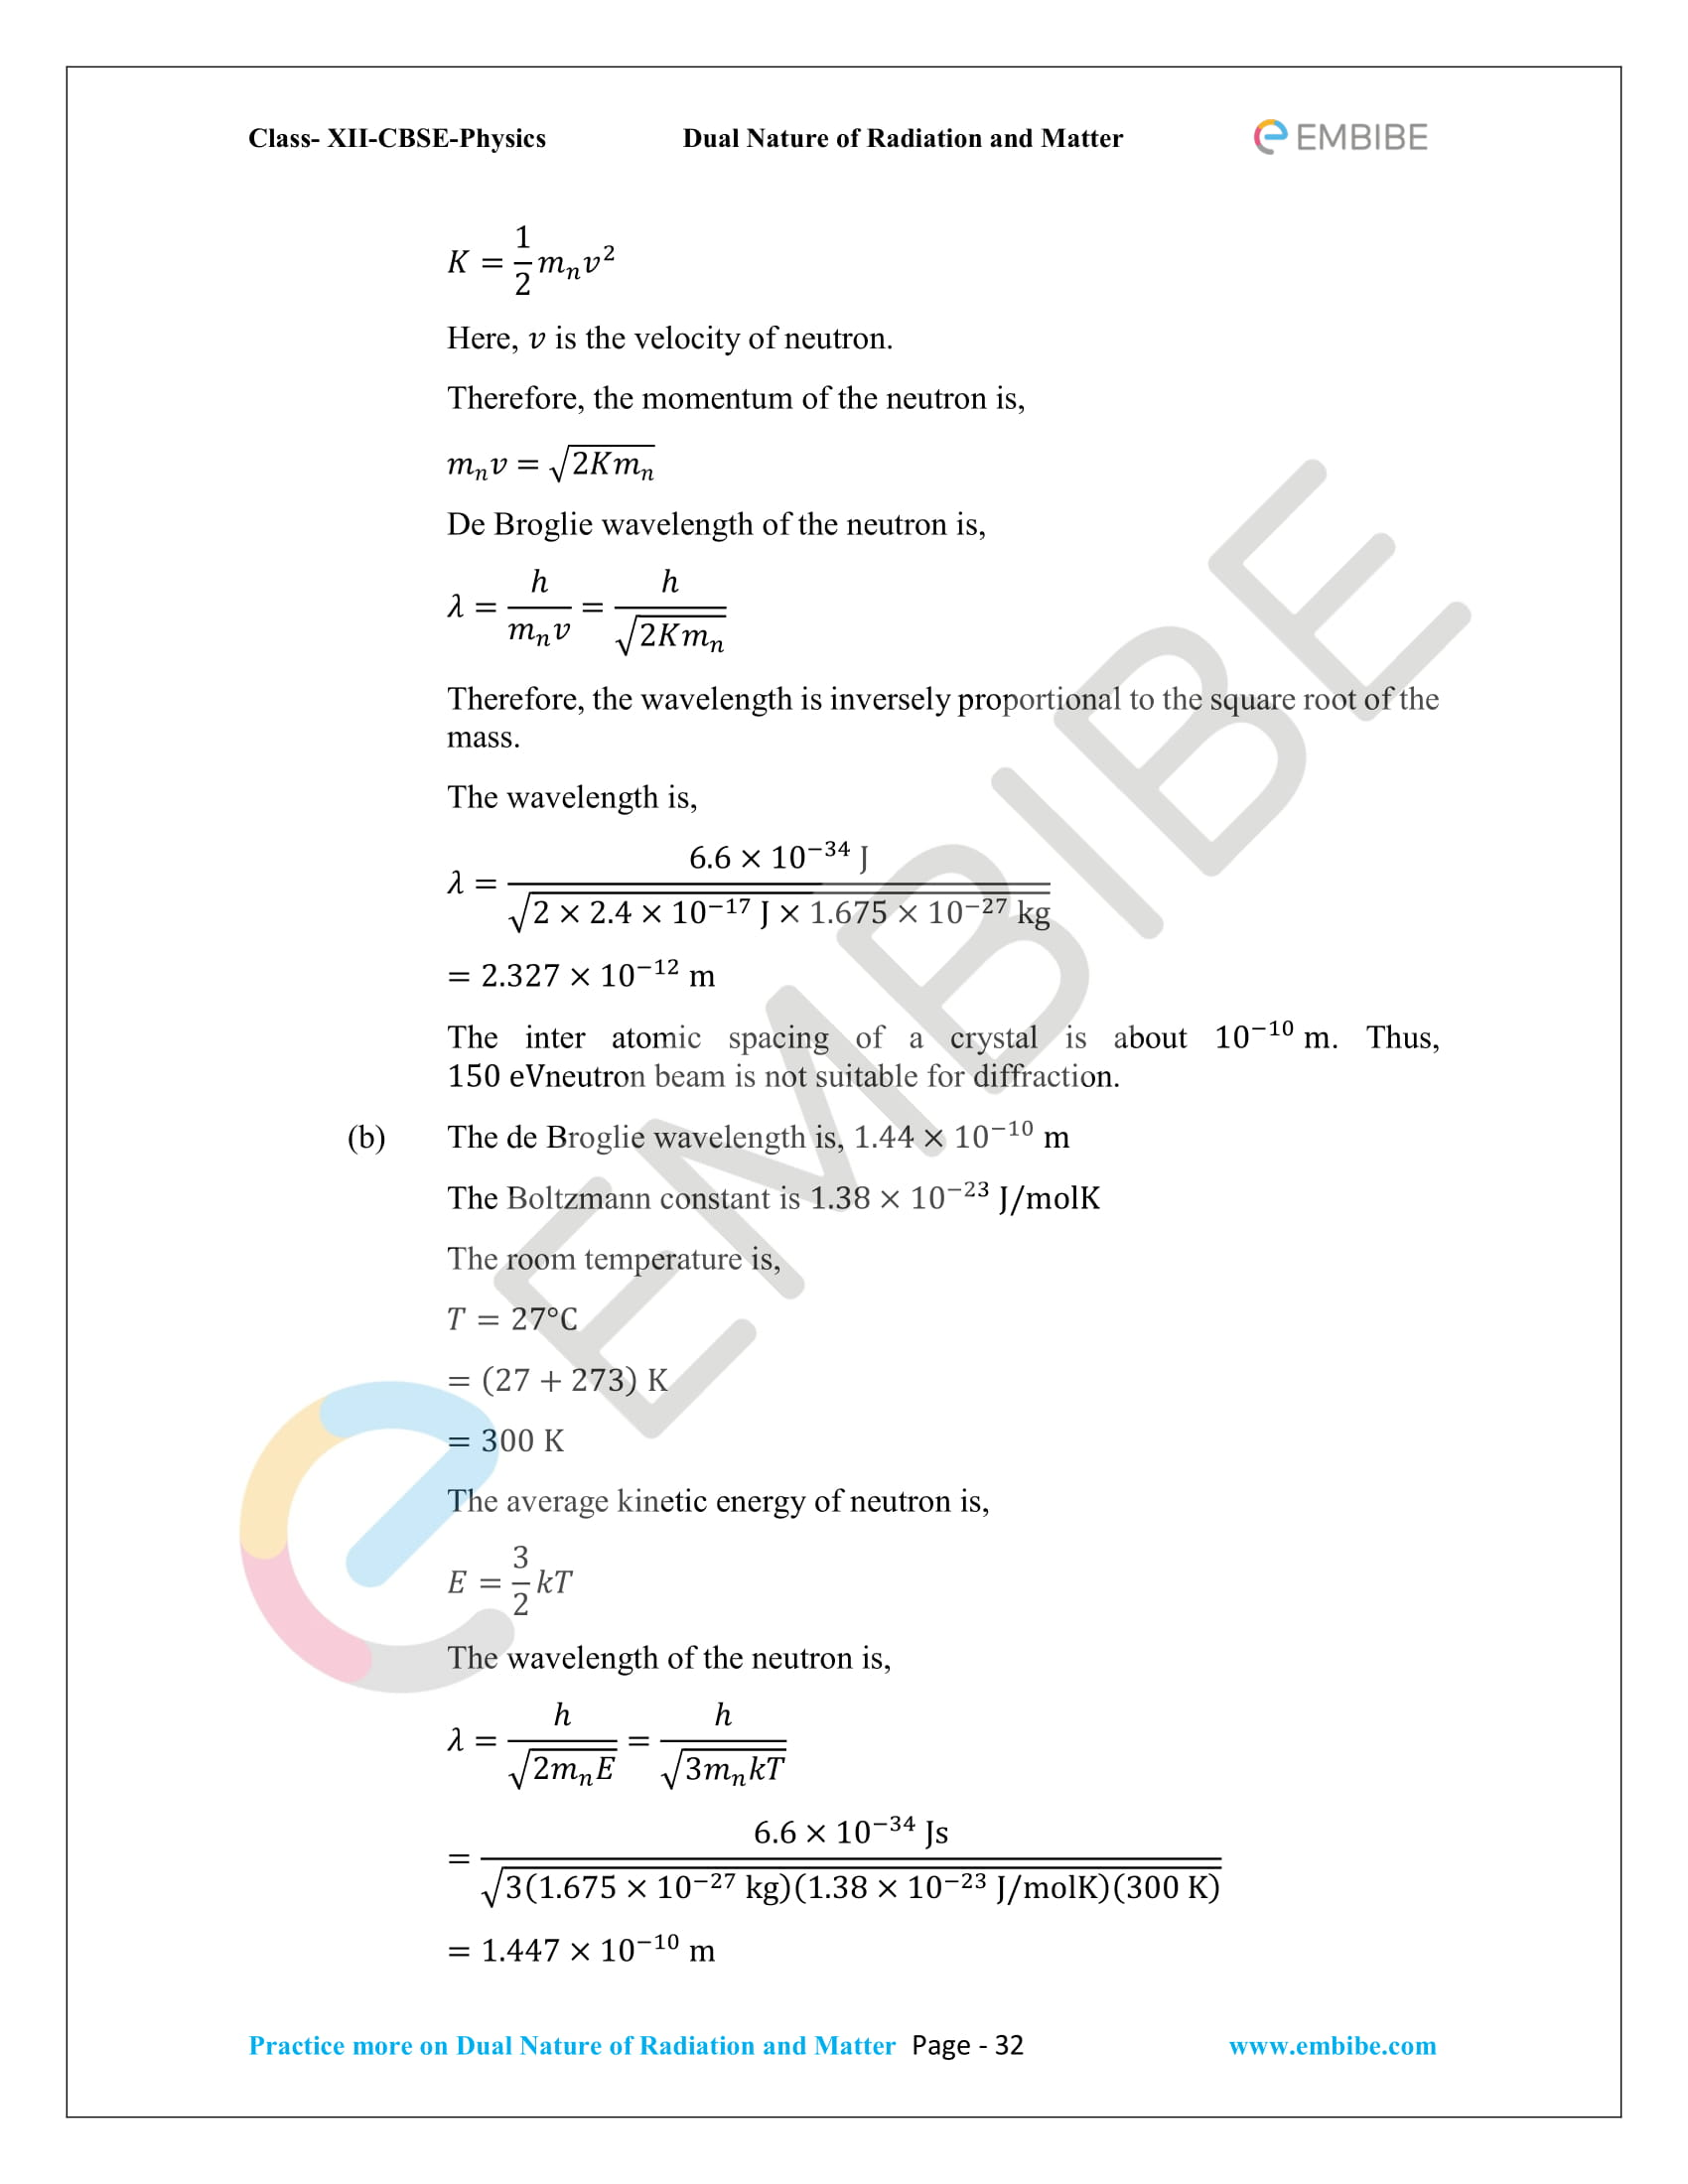 NCERT_Grade 12_Physics_Ch_11_Dual Nature of Radiation and Matter-32